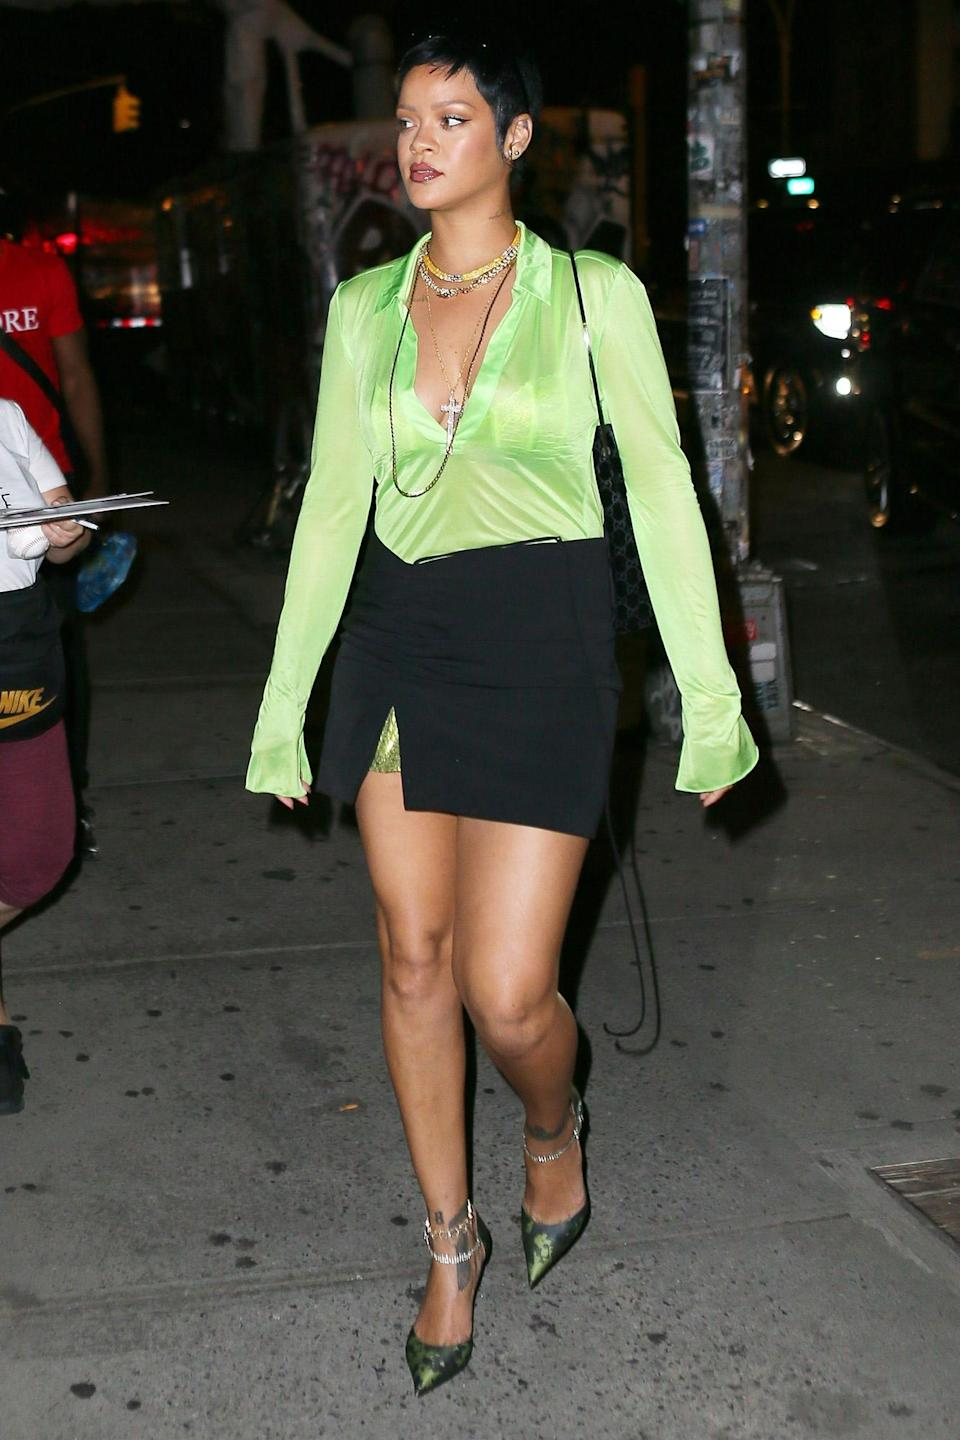 <p>Rihanna looks stunning in a lime green top and black skirt outside of The Bowery Hotel in N.Y.C. on June 28.</p>